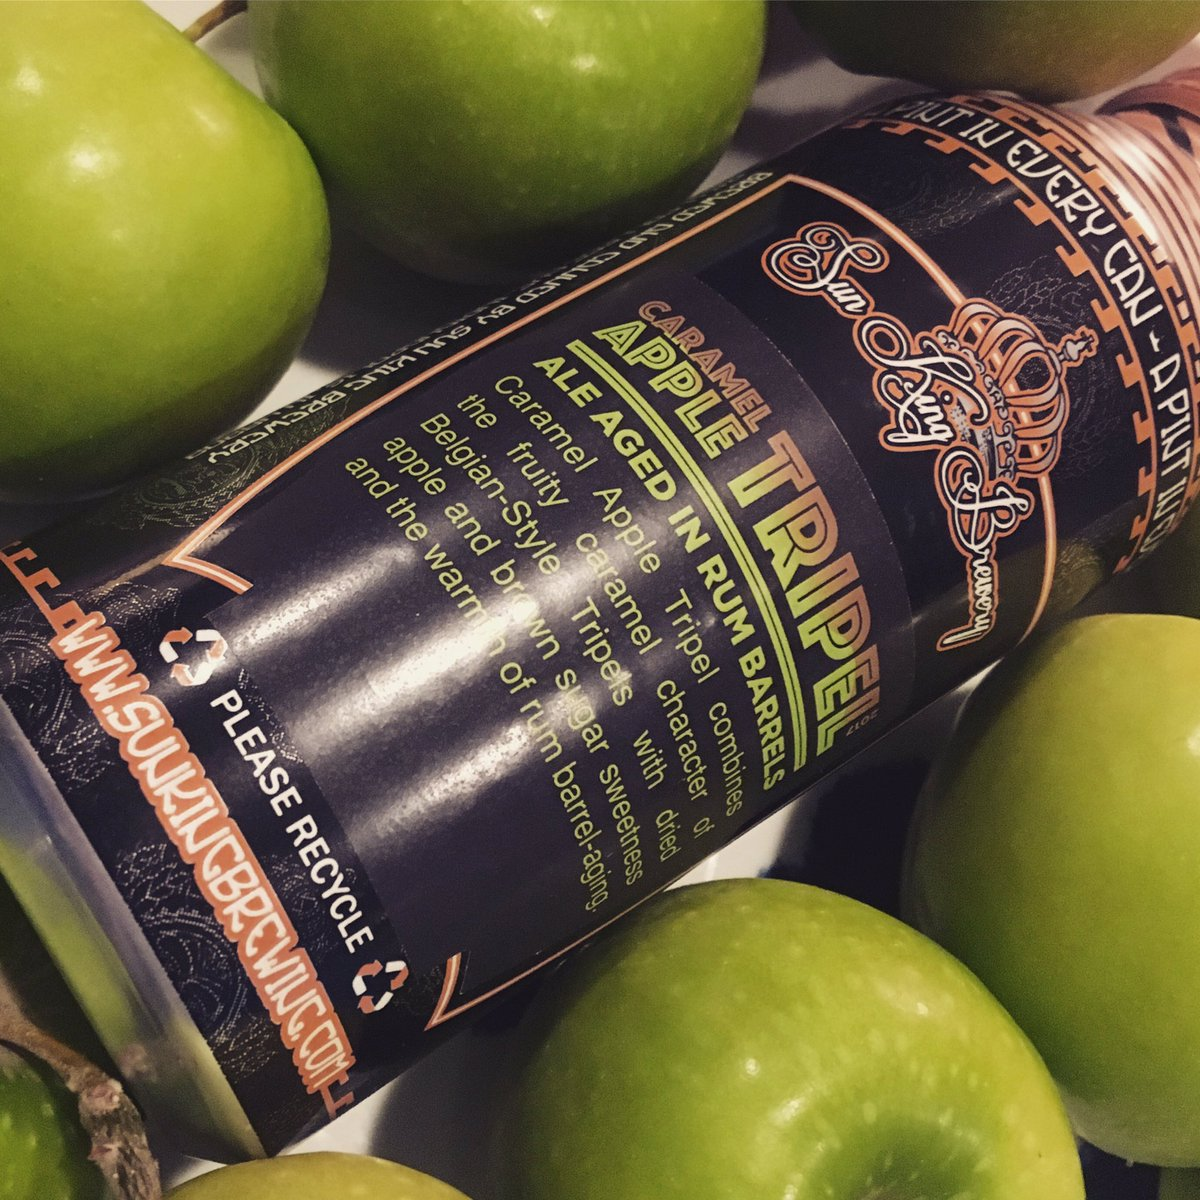 Tomorrow, tomorrow, your only a day a....way! Release time 10am Downtown Indy | 11am Fishers Tap Room for #caramelappletripel Only available in cans at #SKB locations. #barrelagedbeer #barrelaged<br>http://pic.twitter.com/QMUV5TzX4d